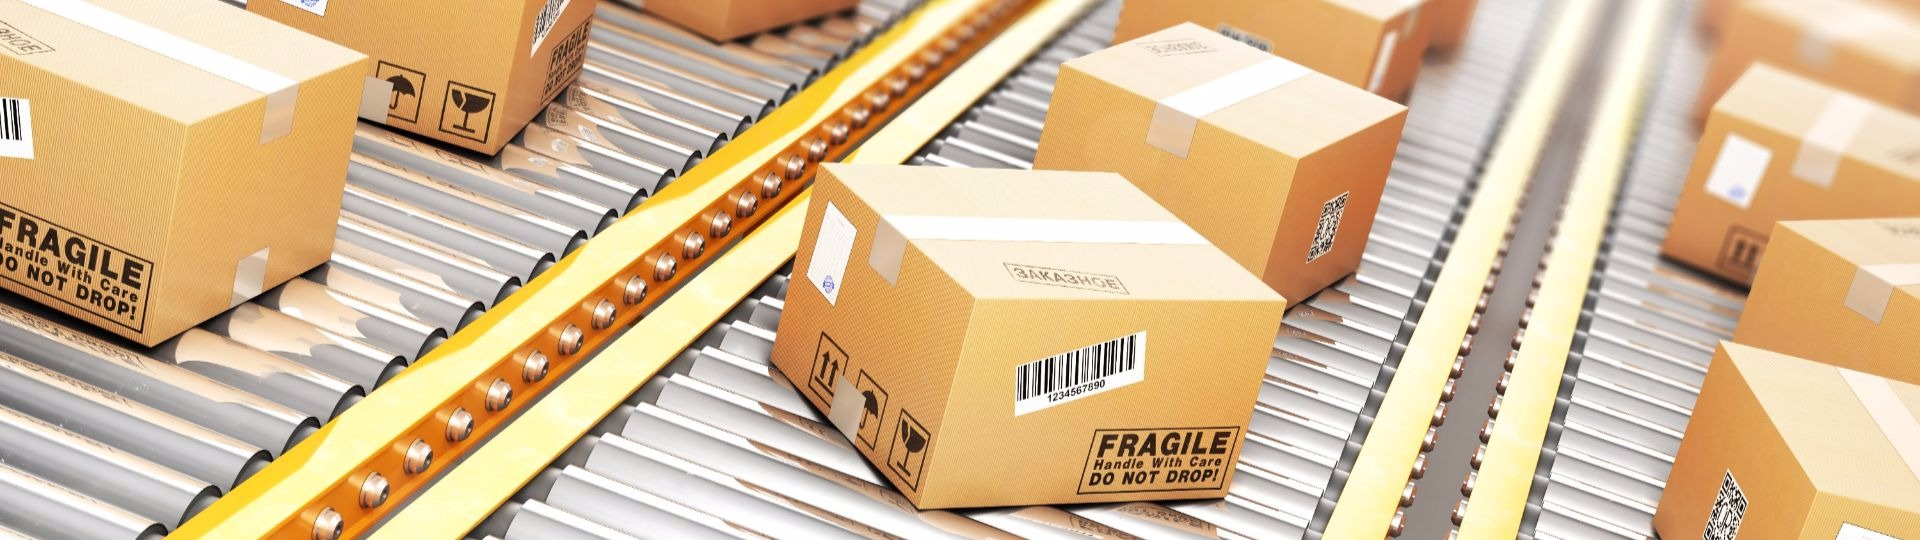 Freight Information